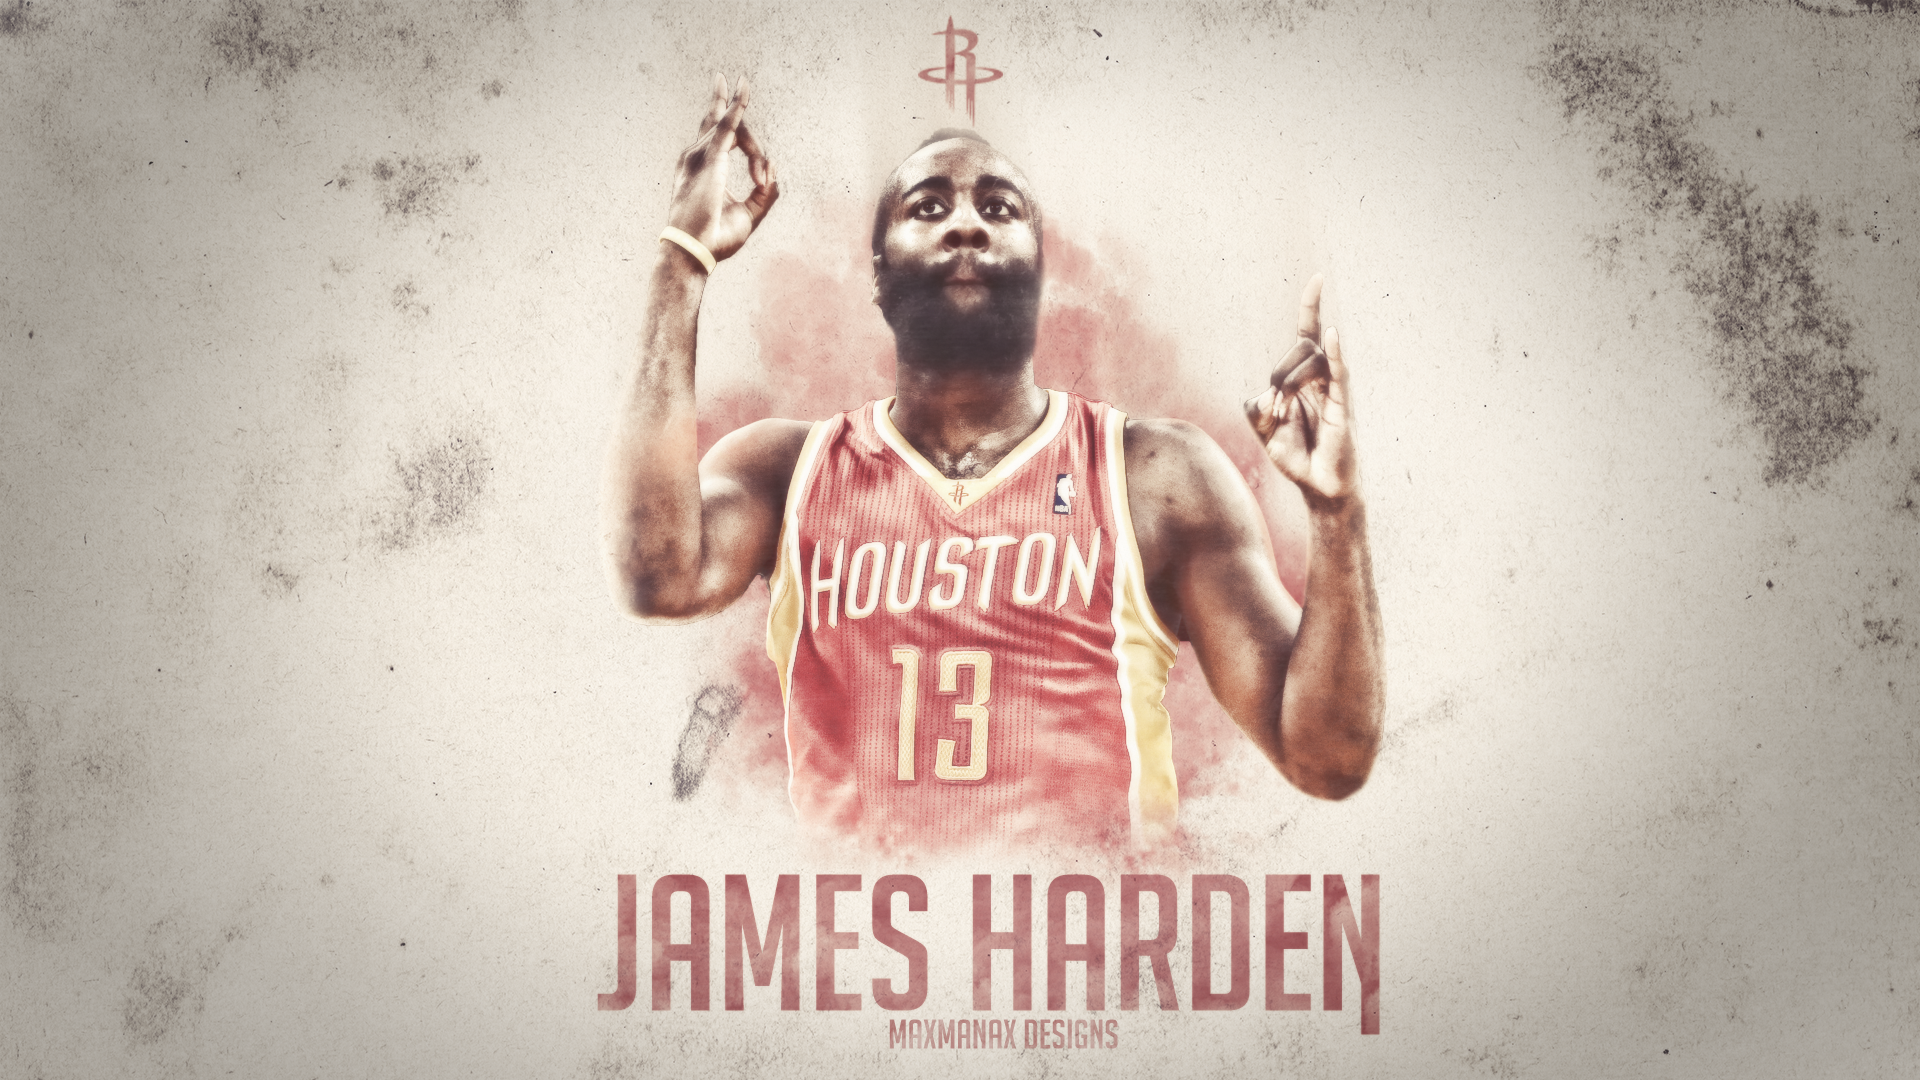 James Harden Wallpapers HD (With images) James harden